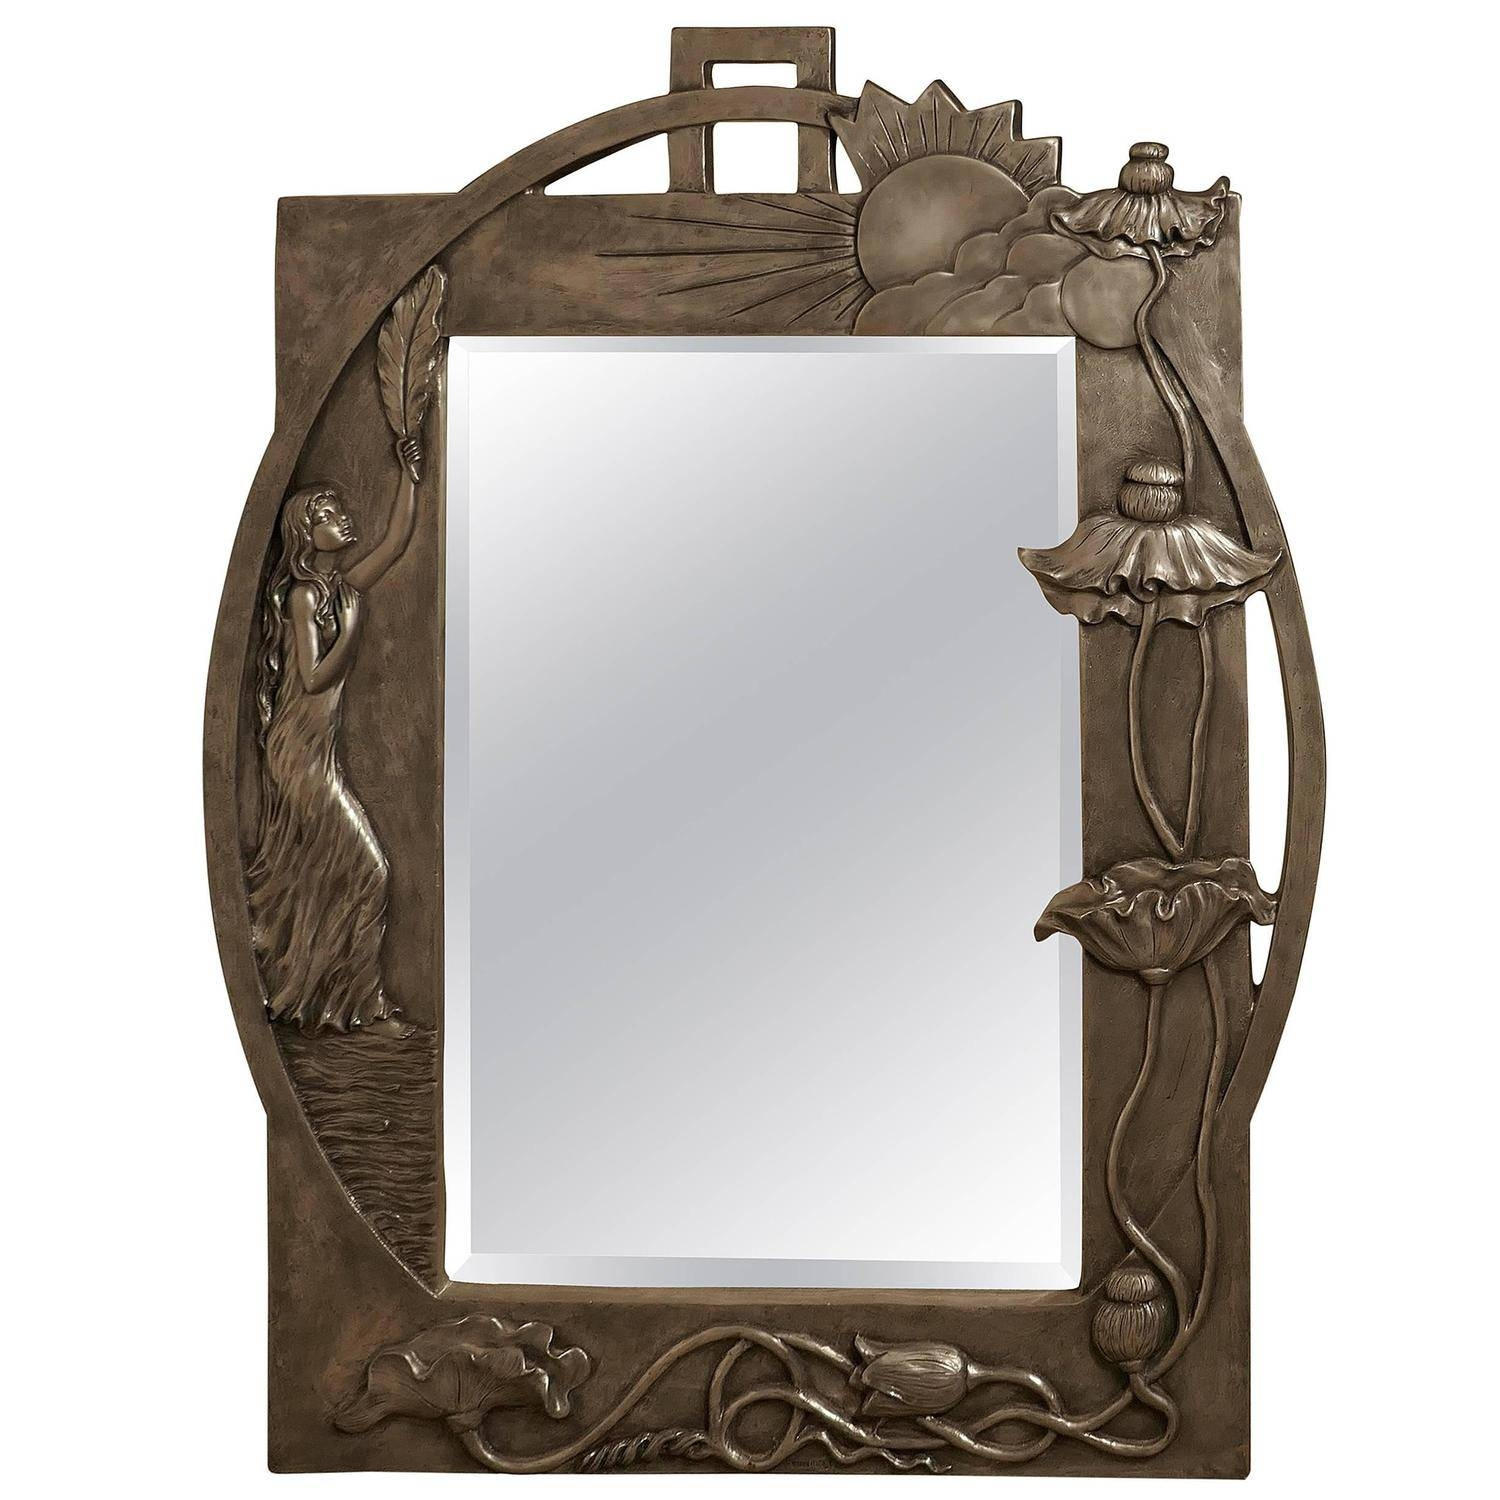 Large Art Nouveau Pewter Wall Mirror, Made In Francerosa Art regarding Large Pewter Mirrors (Image 12 of 25)